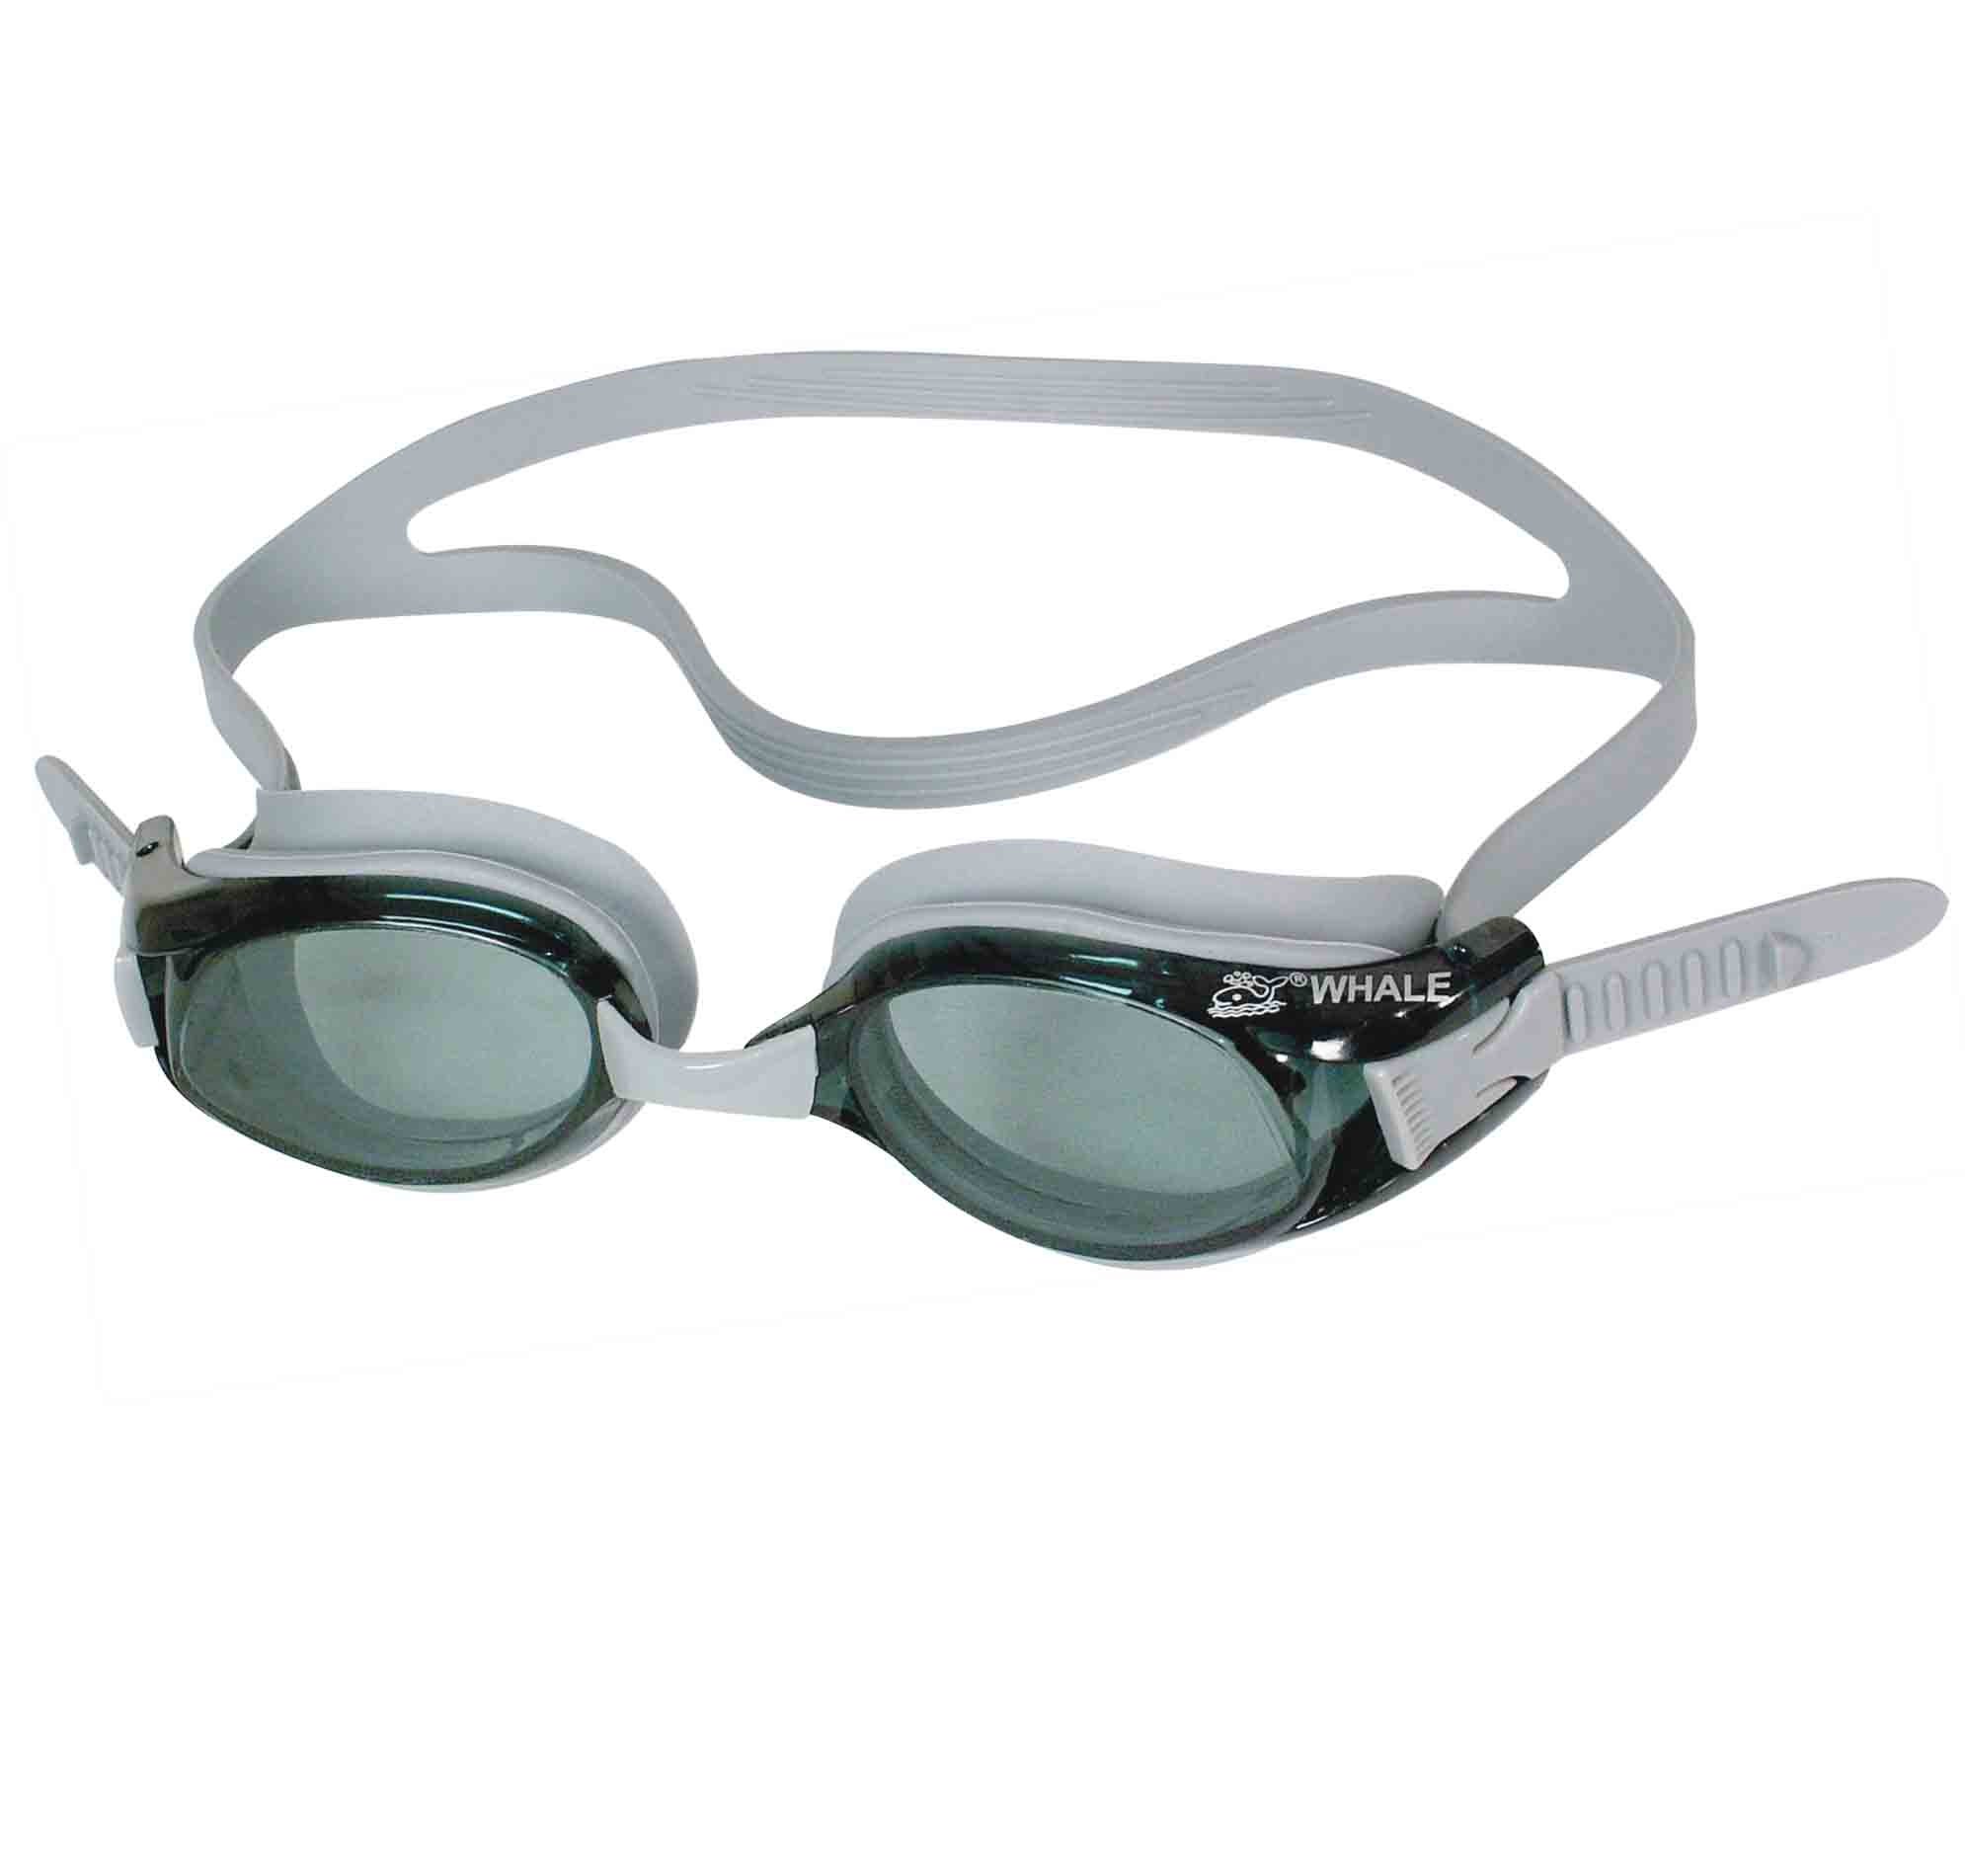 Sunglass Goggles Swimming  whale goggles whale goggles supplieranufacturers at